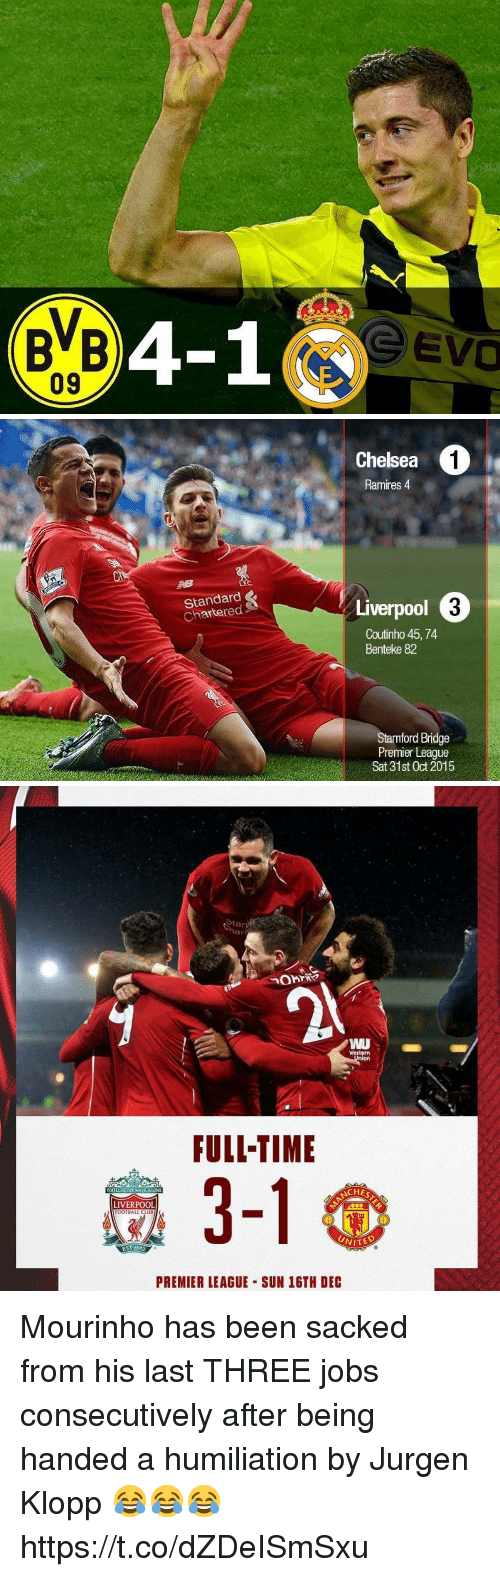 Klopp: 04-1  e evo   Chelsea  1  Ramires 4  (t  Standard  Chartered  Liverpool  Coutinho 45, 74  Benteke 82  ford Bridge  Premier League  Sat 31st Oct 2015   Stan  NU  番  -  Western  FULI-TIME  YOULL NEVER WALKALONE  NCHE  LIVERPOOL  FOOTBALL CLIB  2  EST 1892  PREMIER LEAGUE SUN 16TH DEC Mourinho has been sacked from his last THREE jobs consecutively after being handed a humiliation by Jurgen Klopp 😂😂😂 https://t.co/dZDeISmSxu